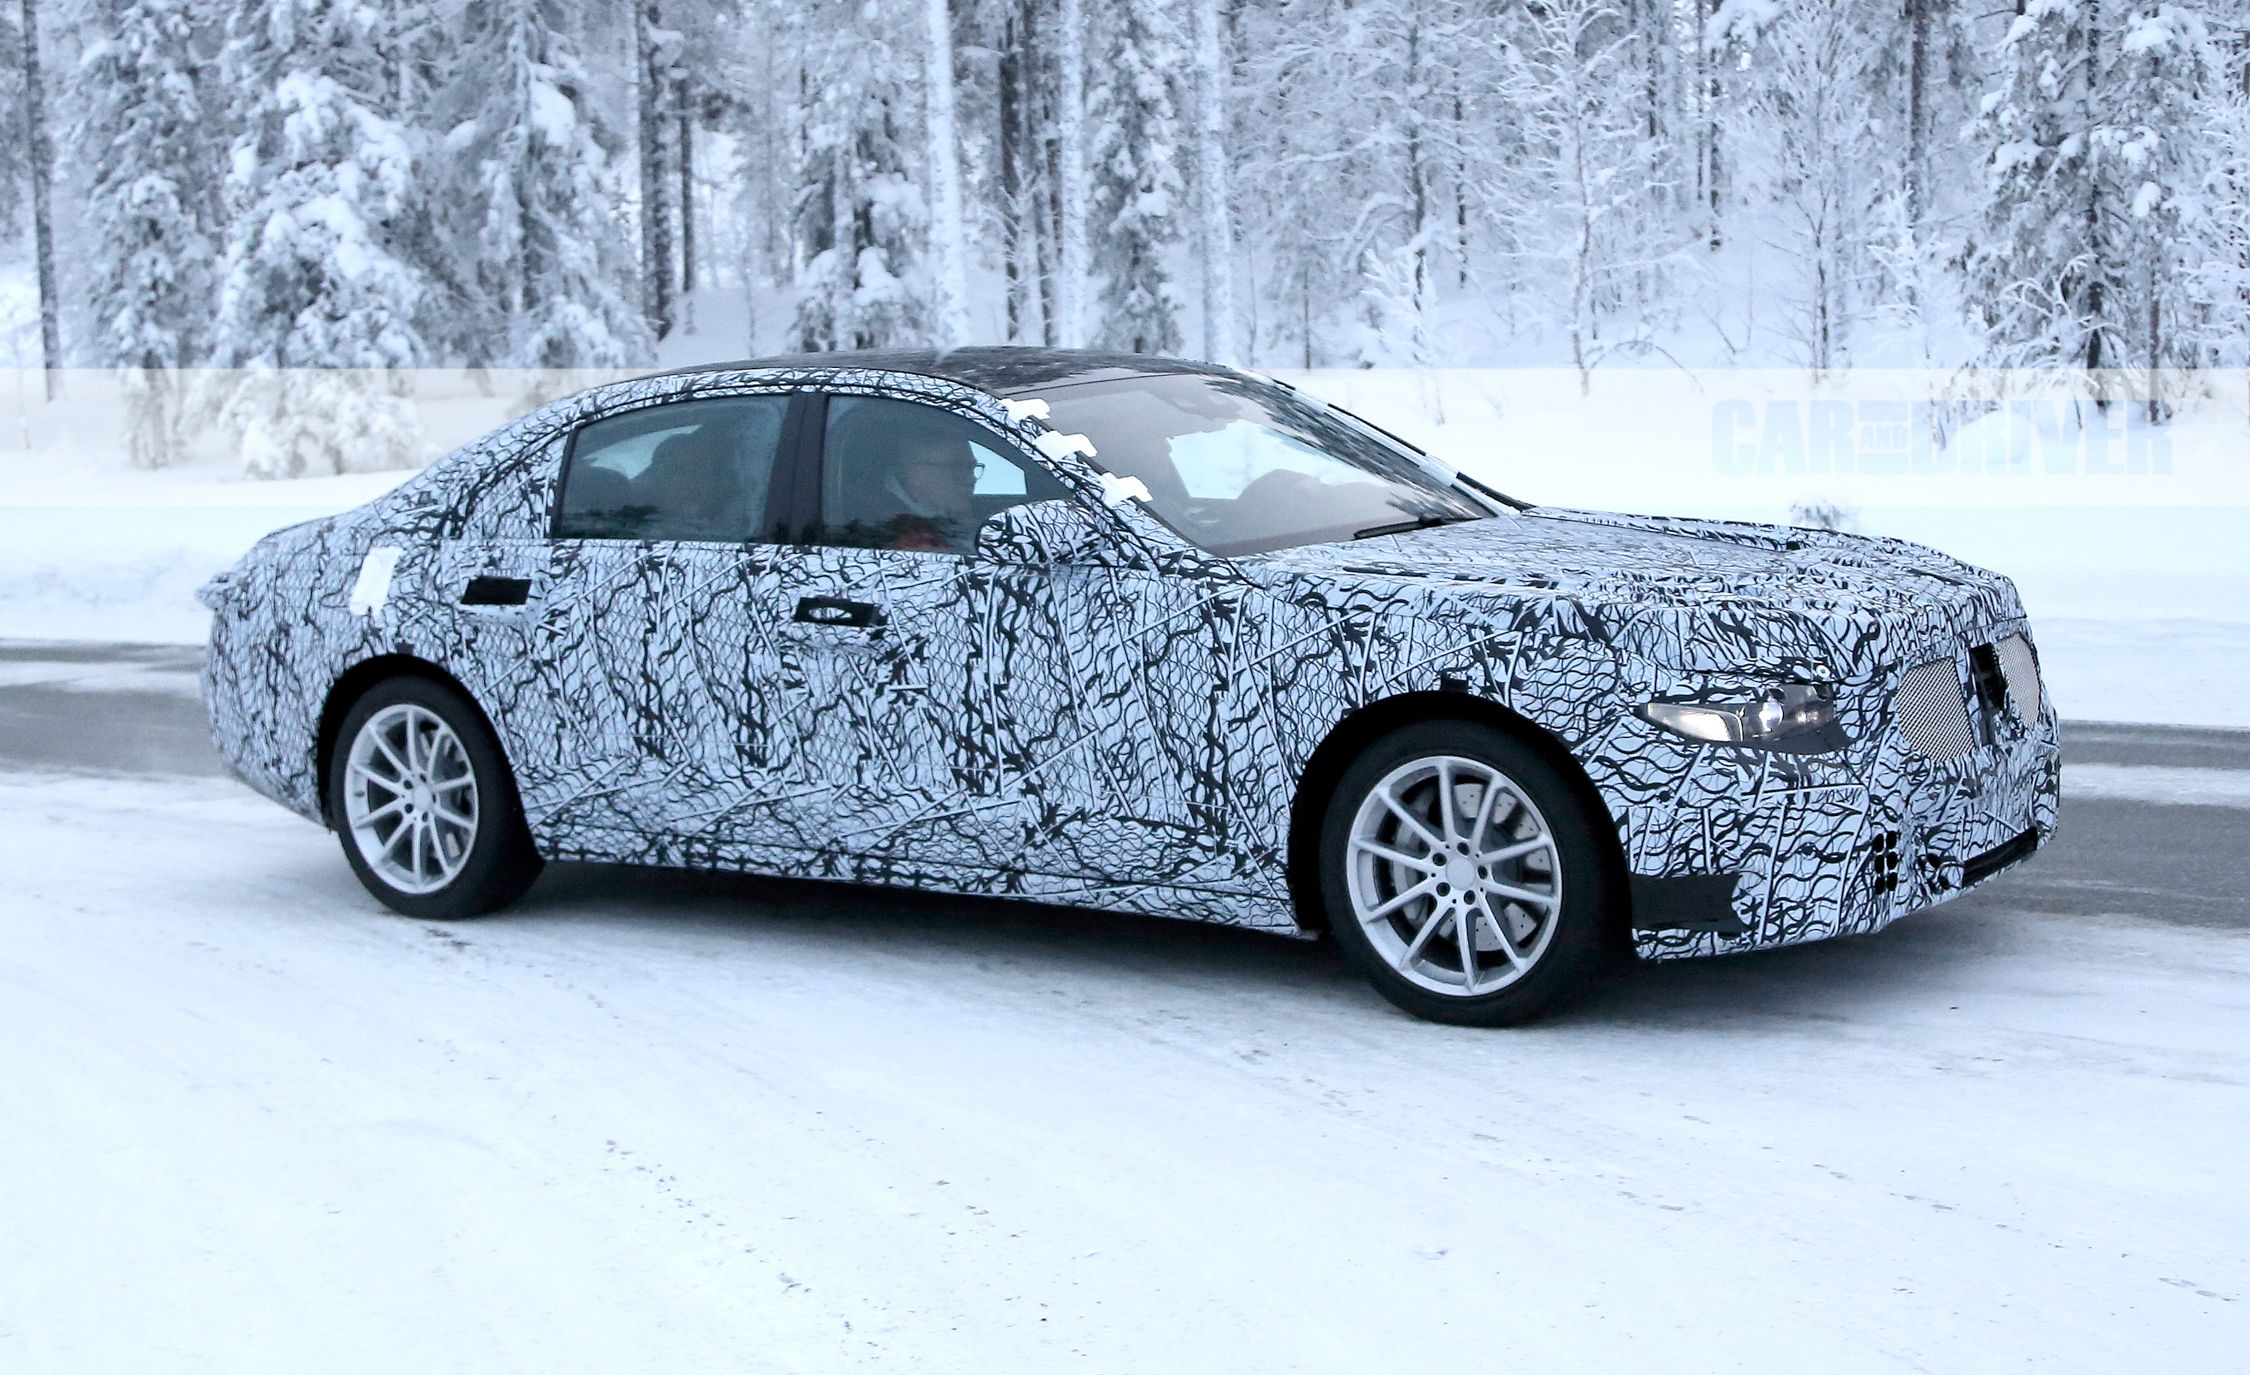 2020 Mercedes-Benz S-class Spied: Big Changes Beneath Its Classy Body